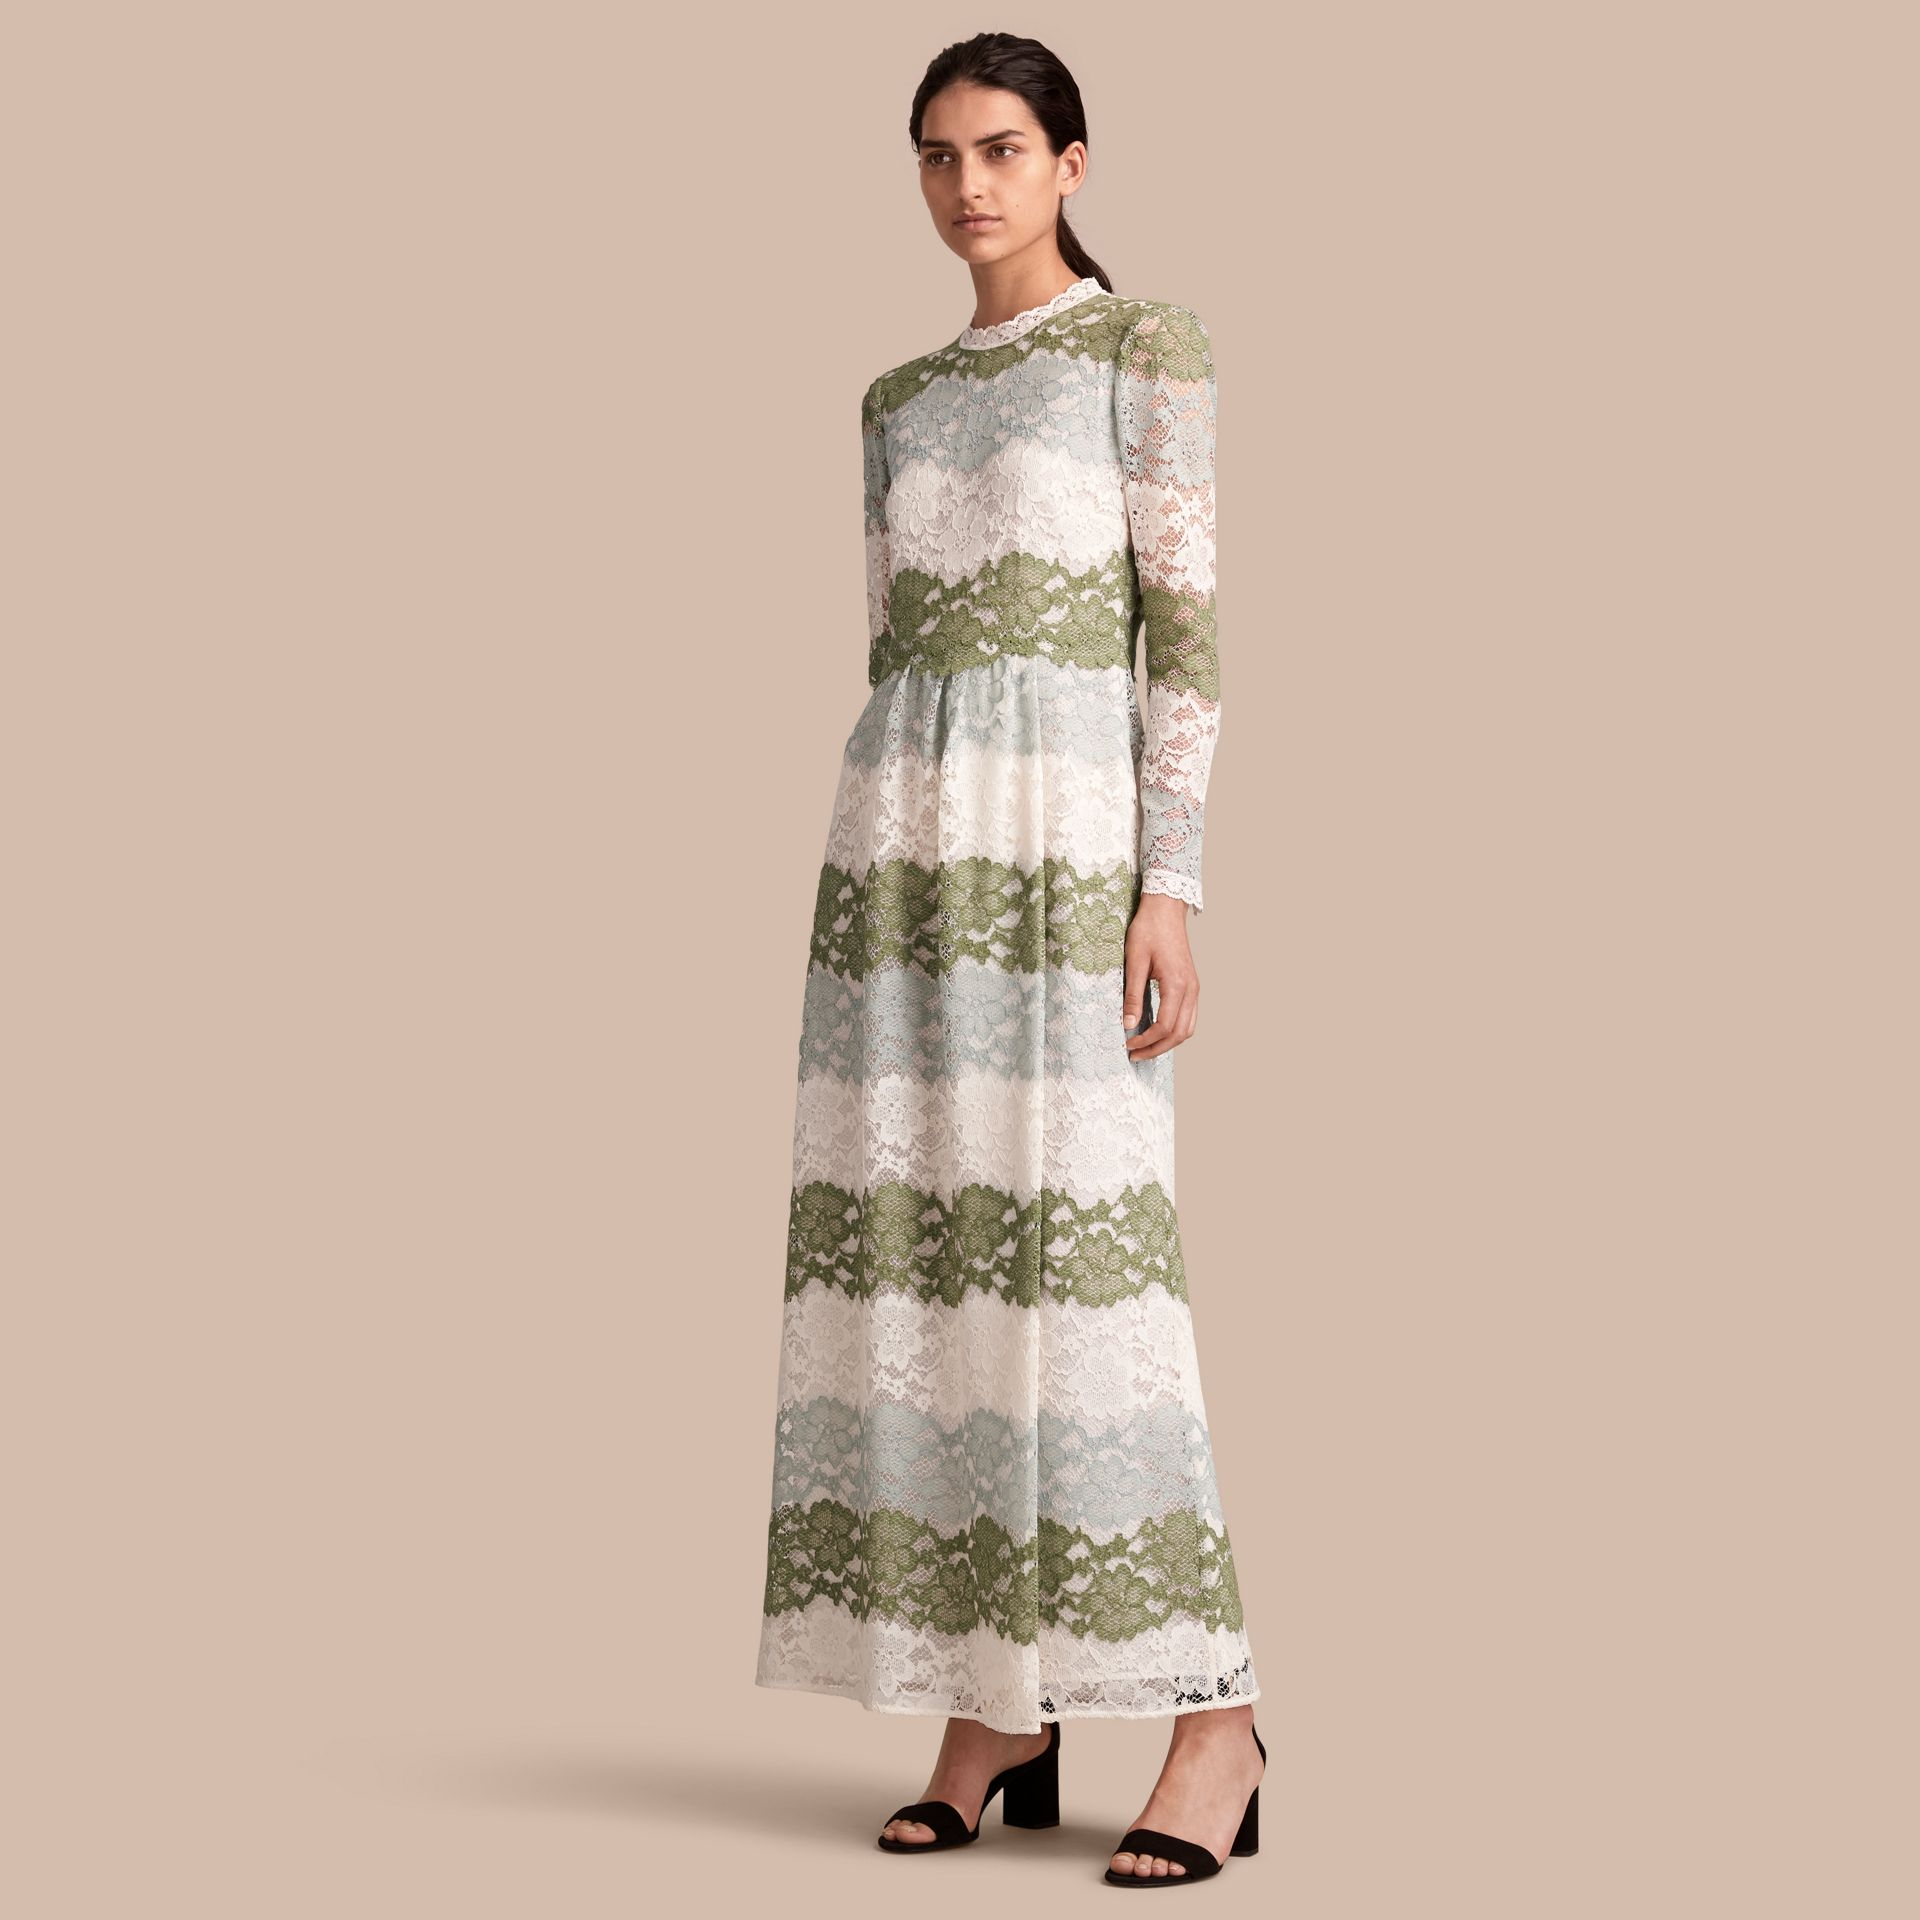 Floor-length Floral Lace Dress in Chalk Green - Women | Burberry - gallery image 1